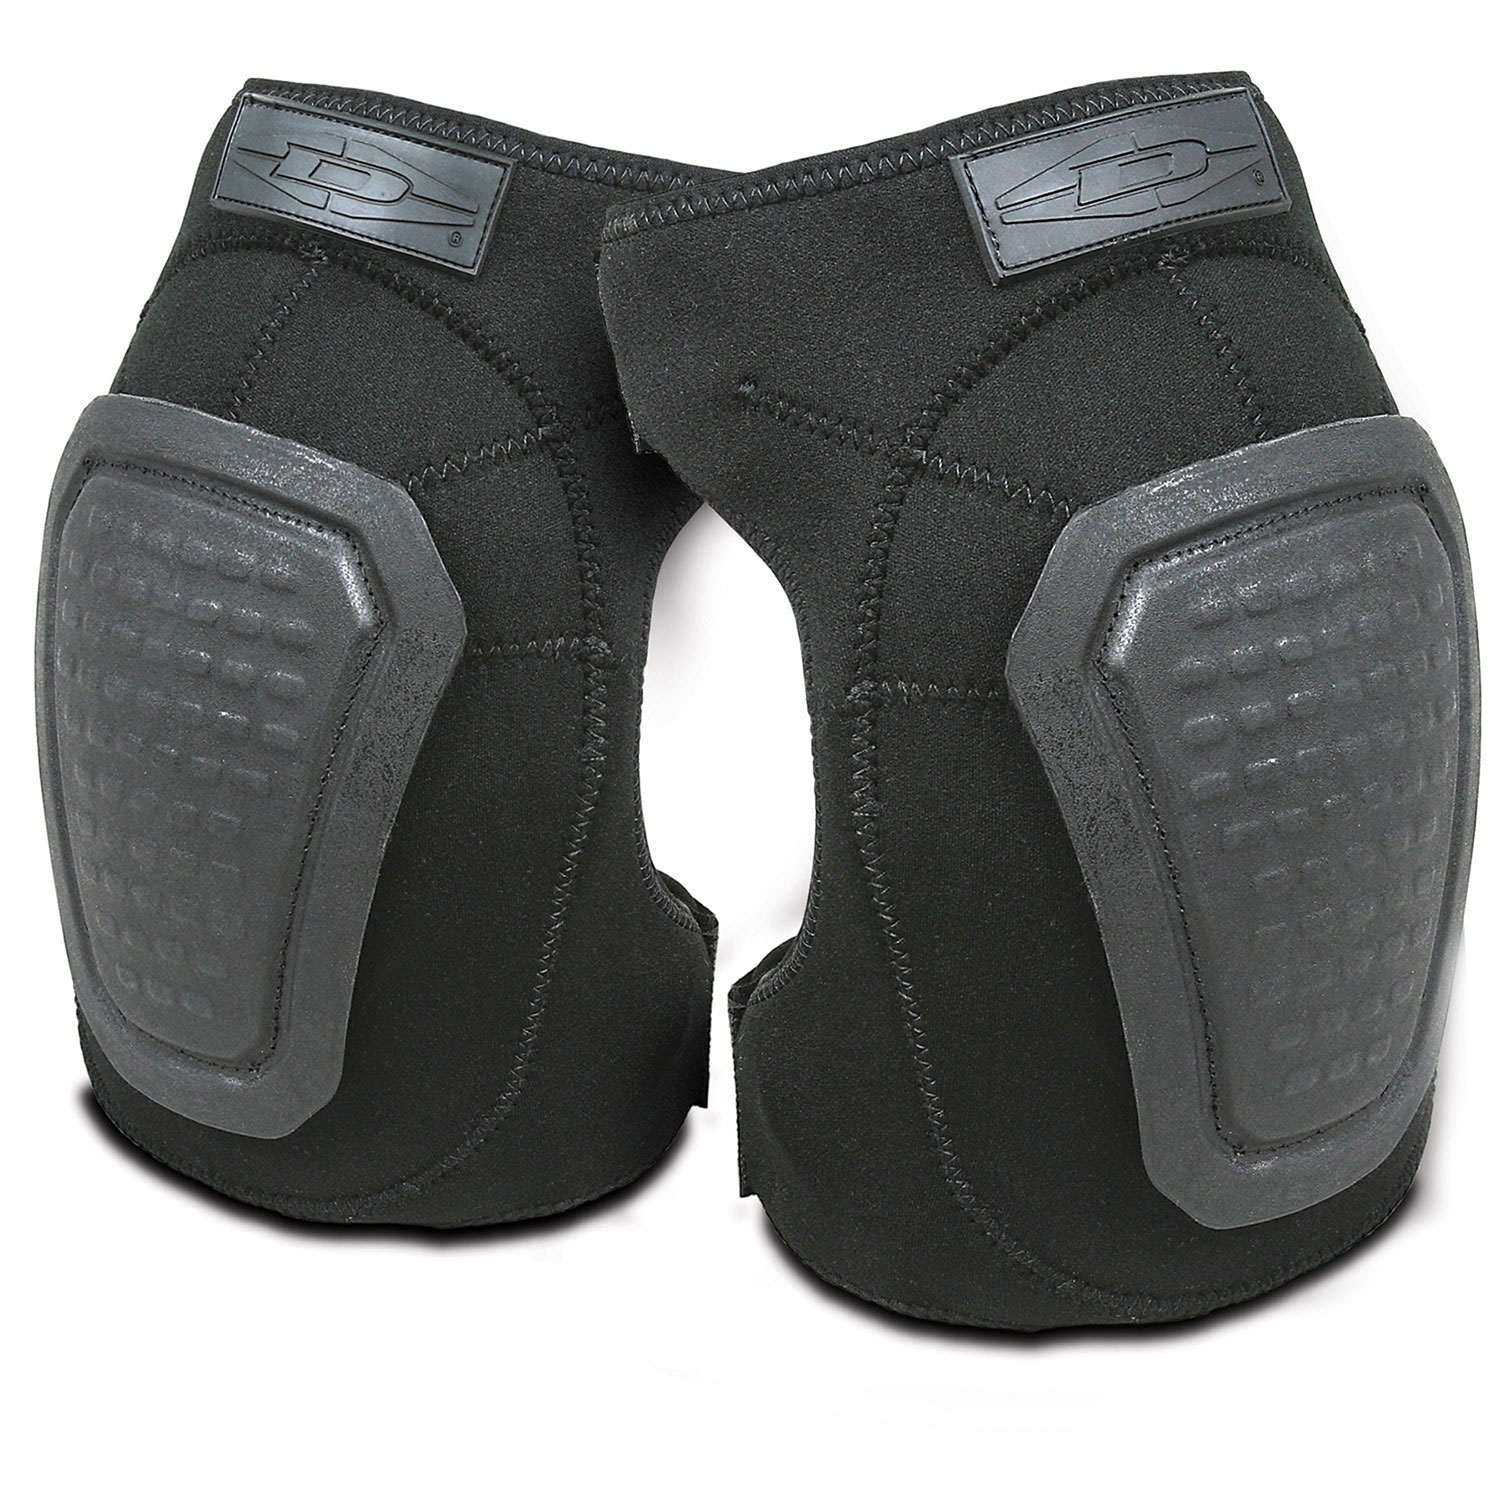 Damascus Imperial Neoprene Knee Pads with Reinforced Non-Sli